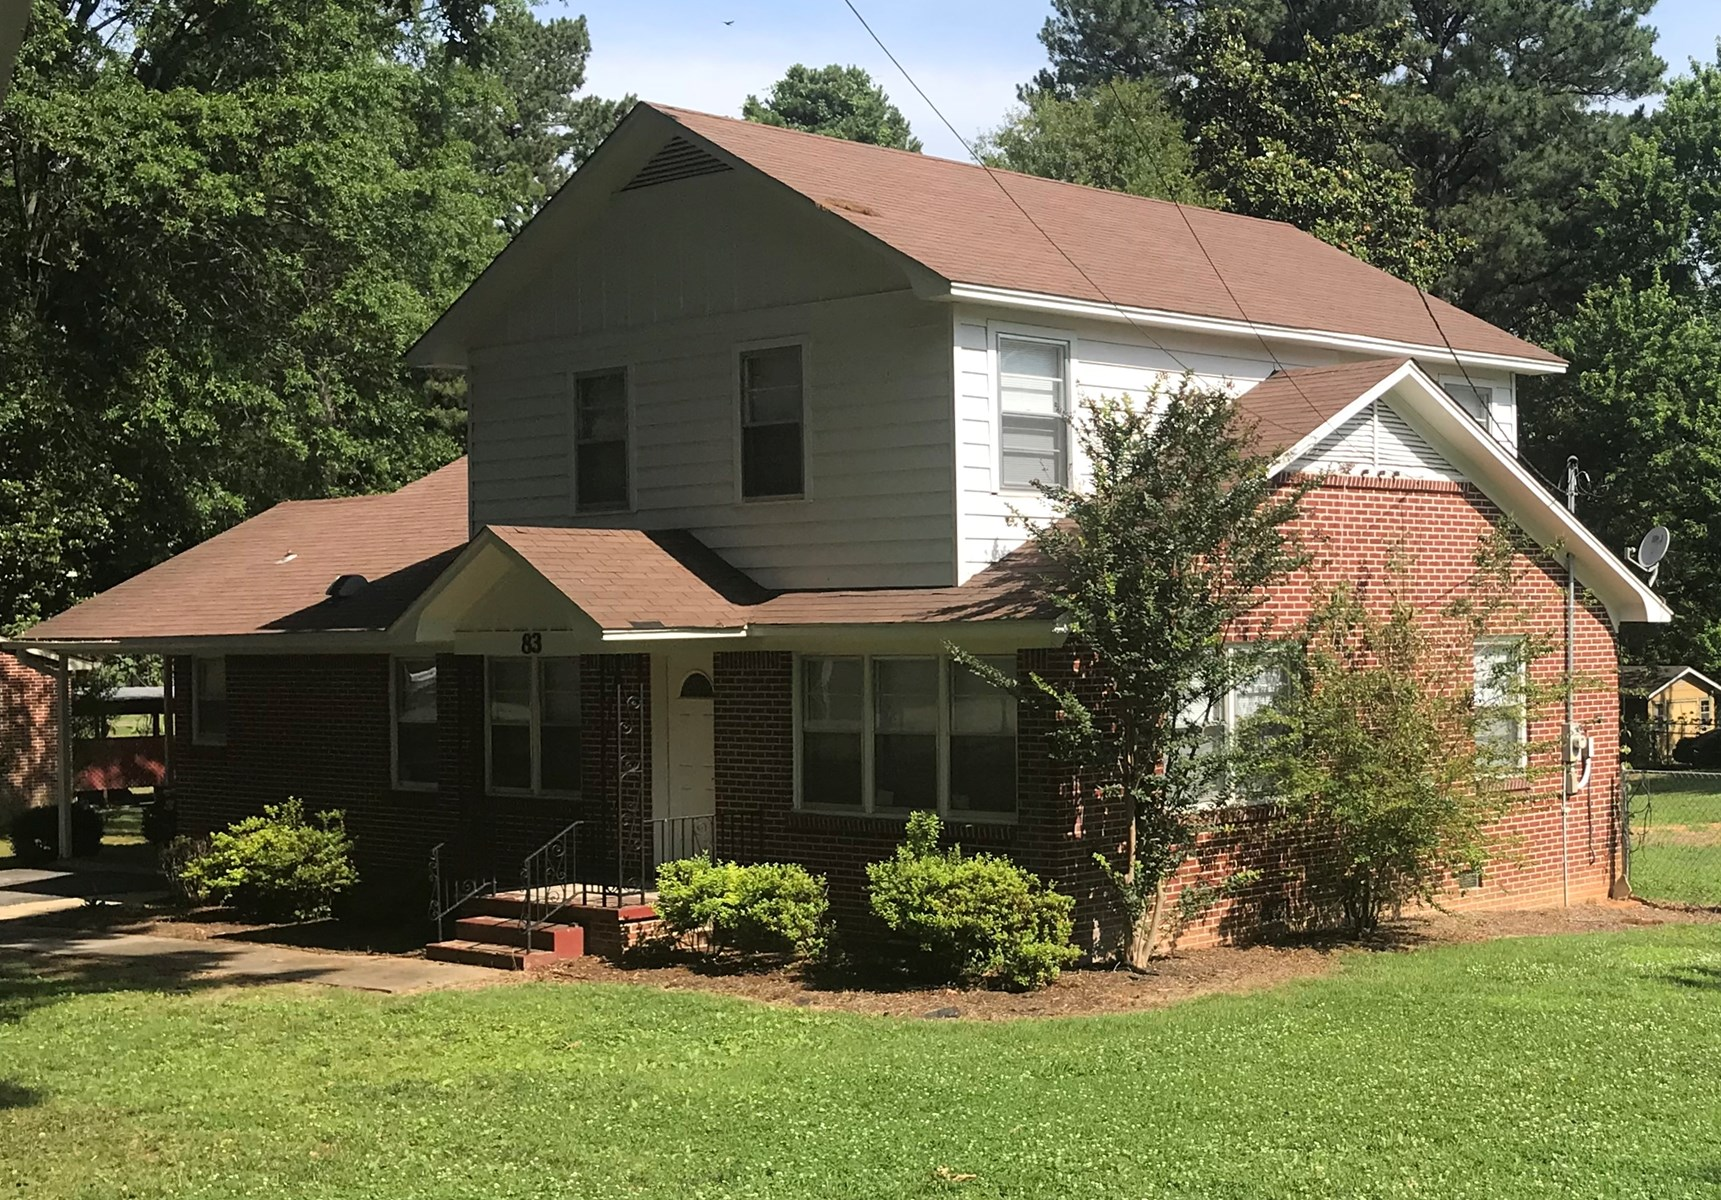 Beautiful 4 Br 2 Ba home for sale in central Jackson Tn